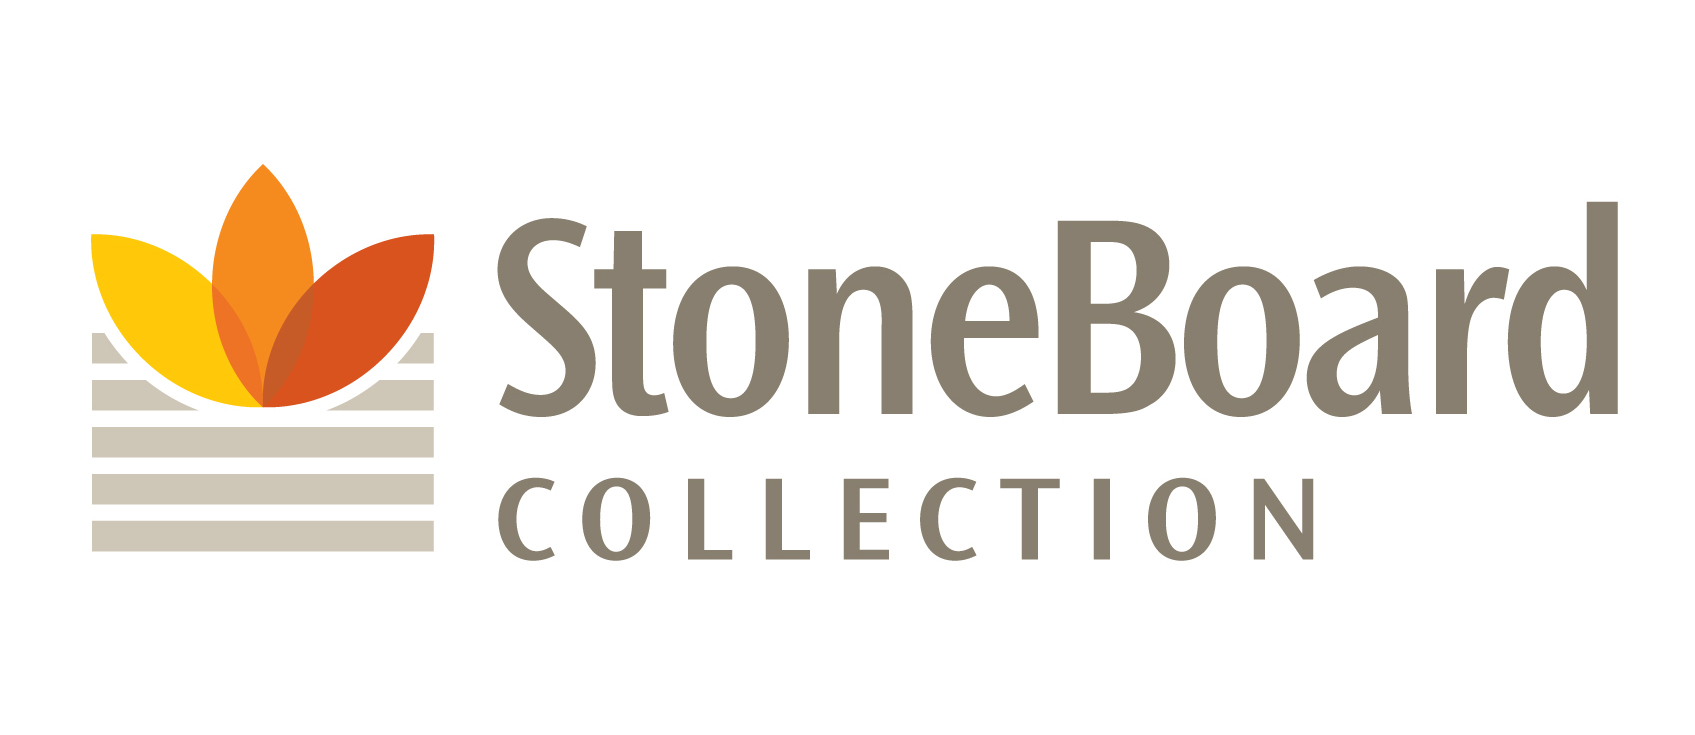 Product Maker: Stoneboard Collection